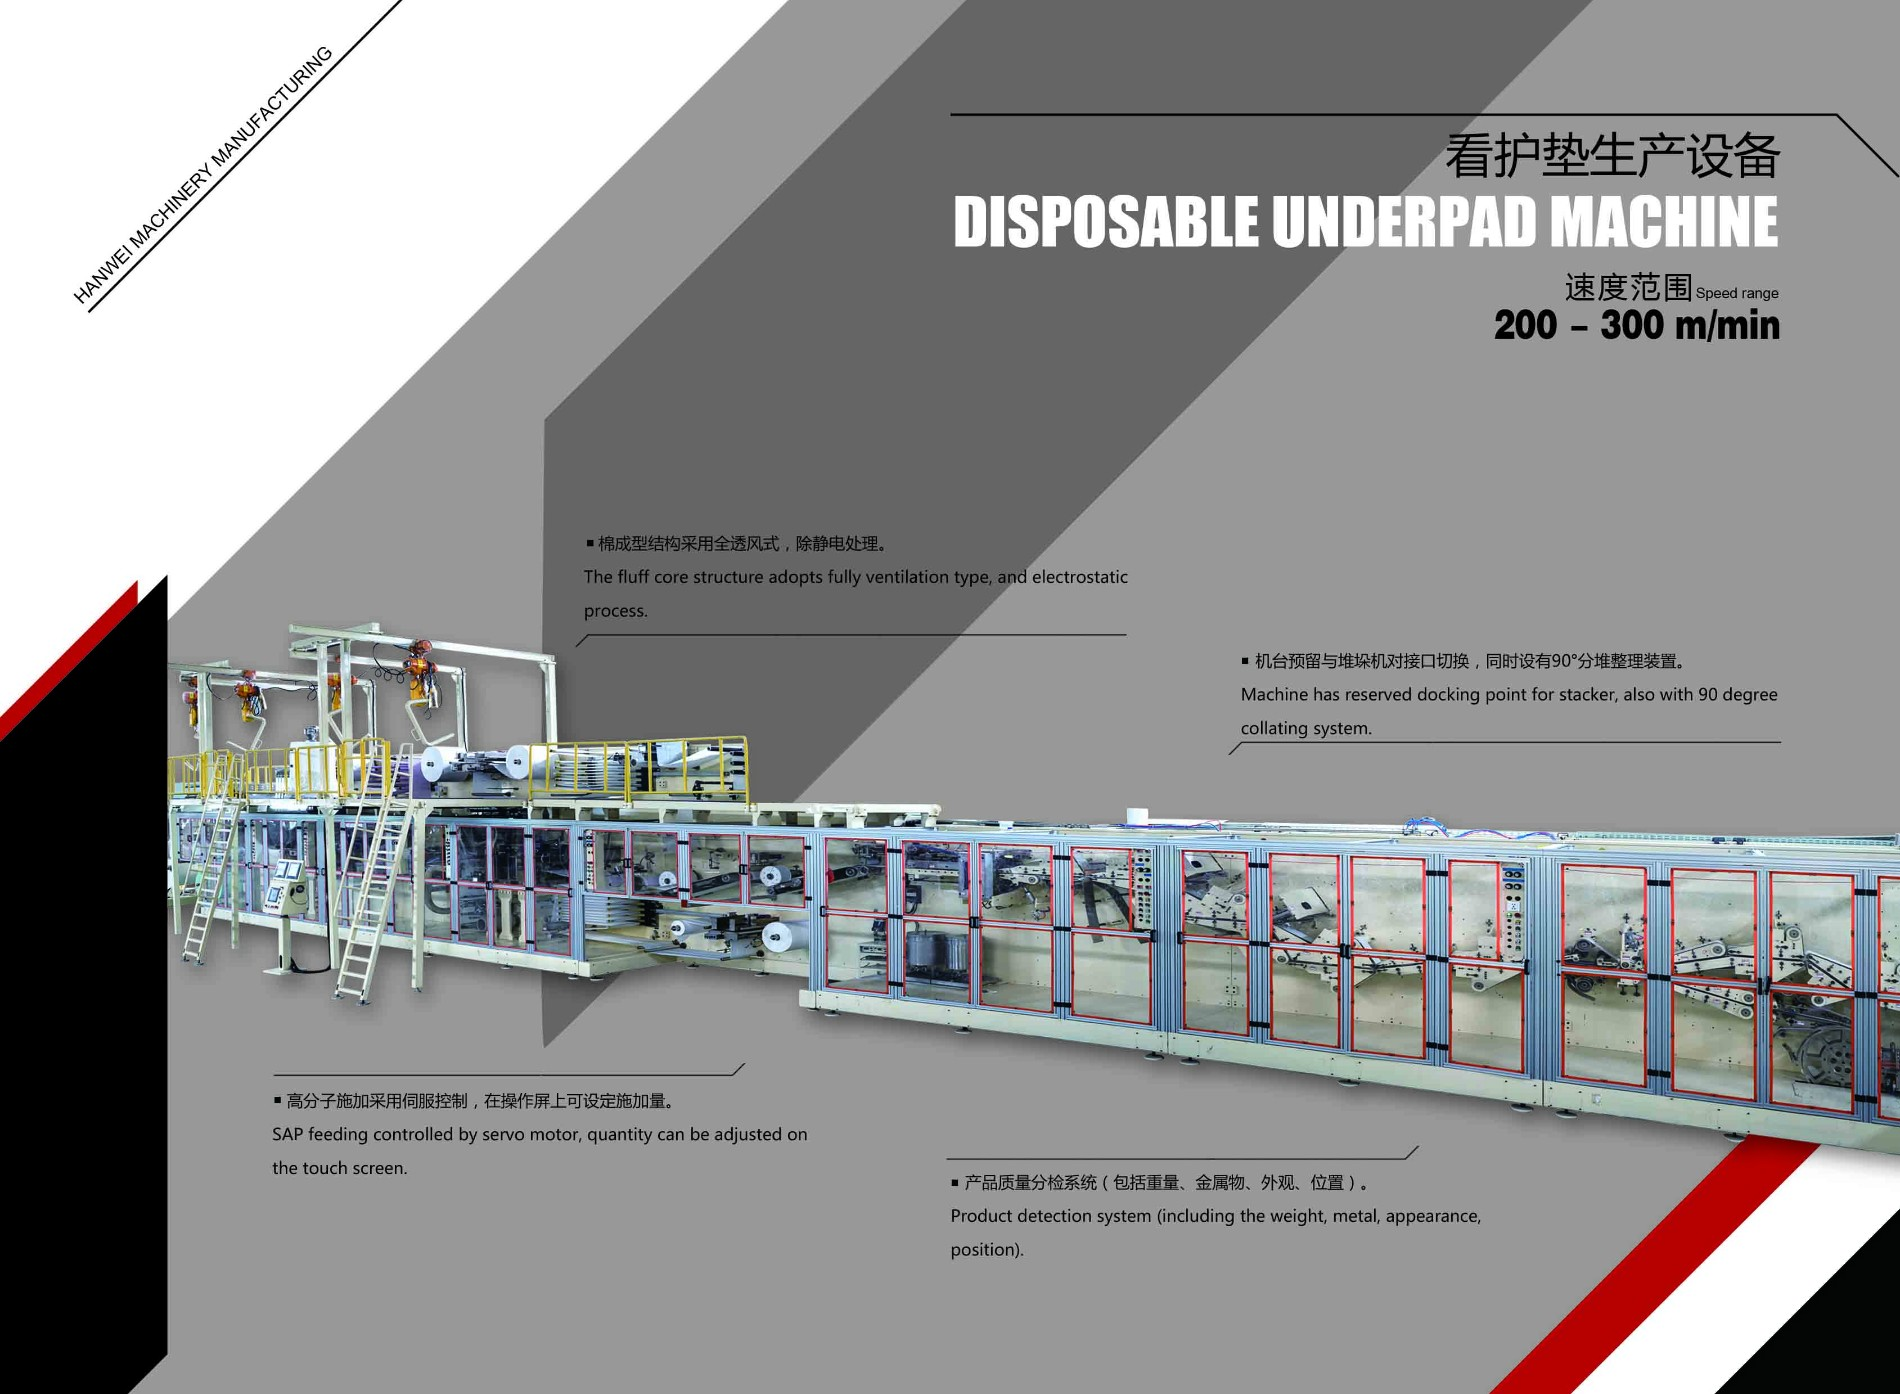 Disposable Underpad Machine